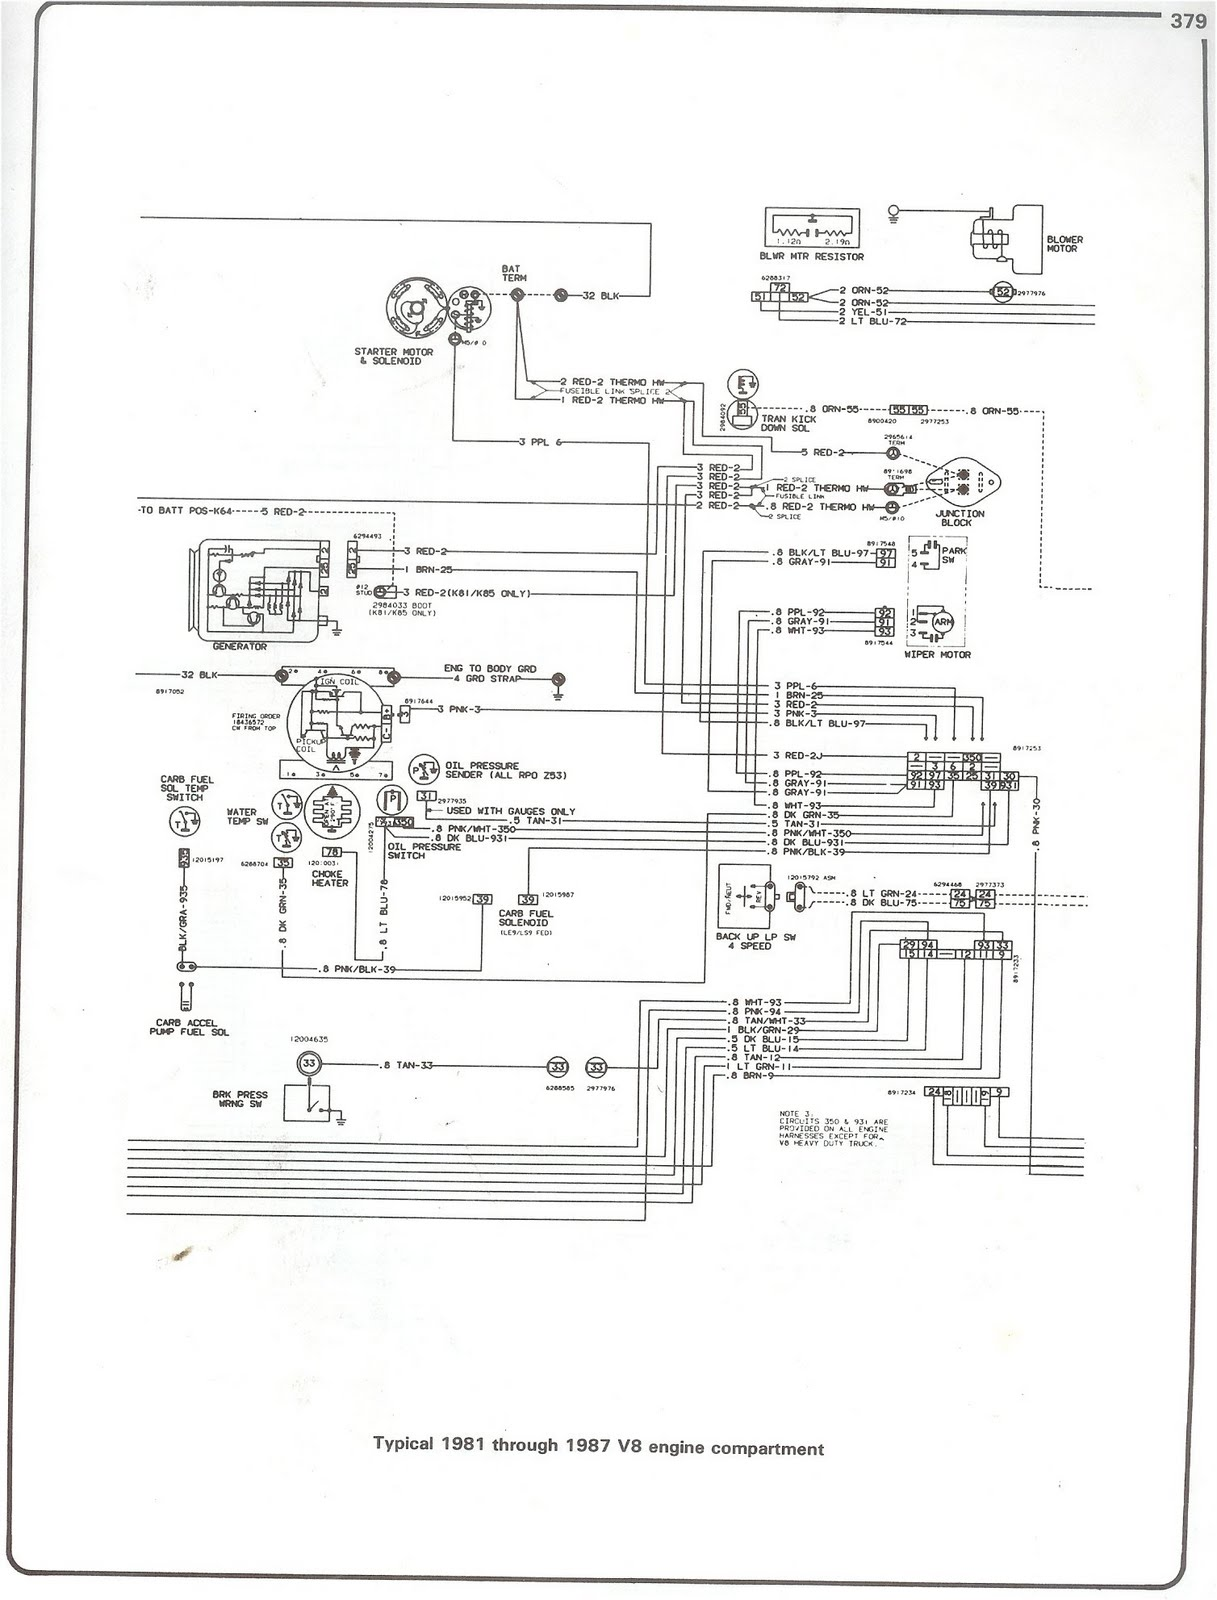 1976 chevy truck wiring diagram wiring diagram perfomance 1976 chevy truck wiring harness diagram 1976 circuit diagrams [ 1217 x 1600 Pixel ]